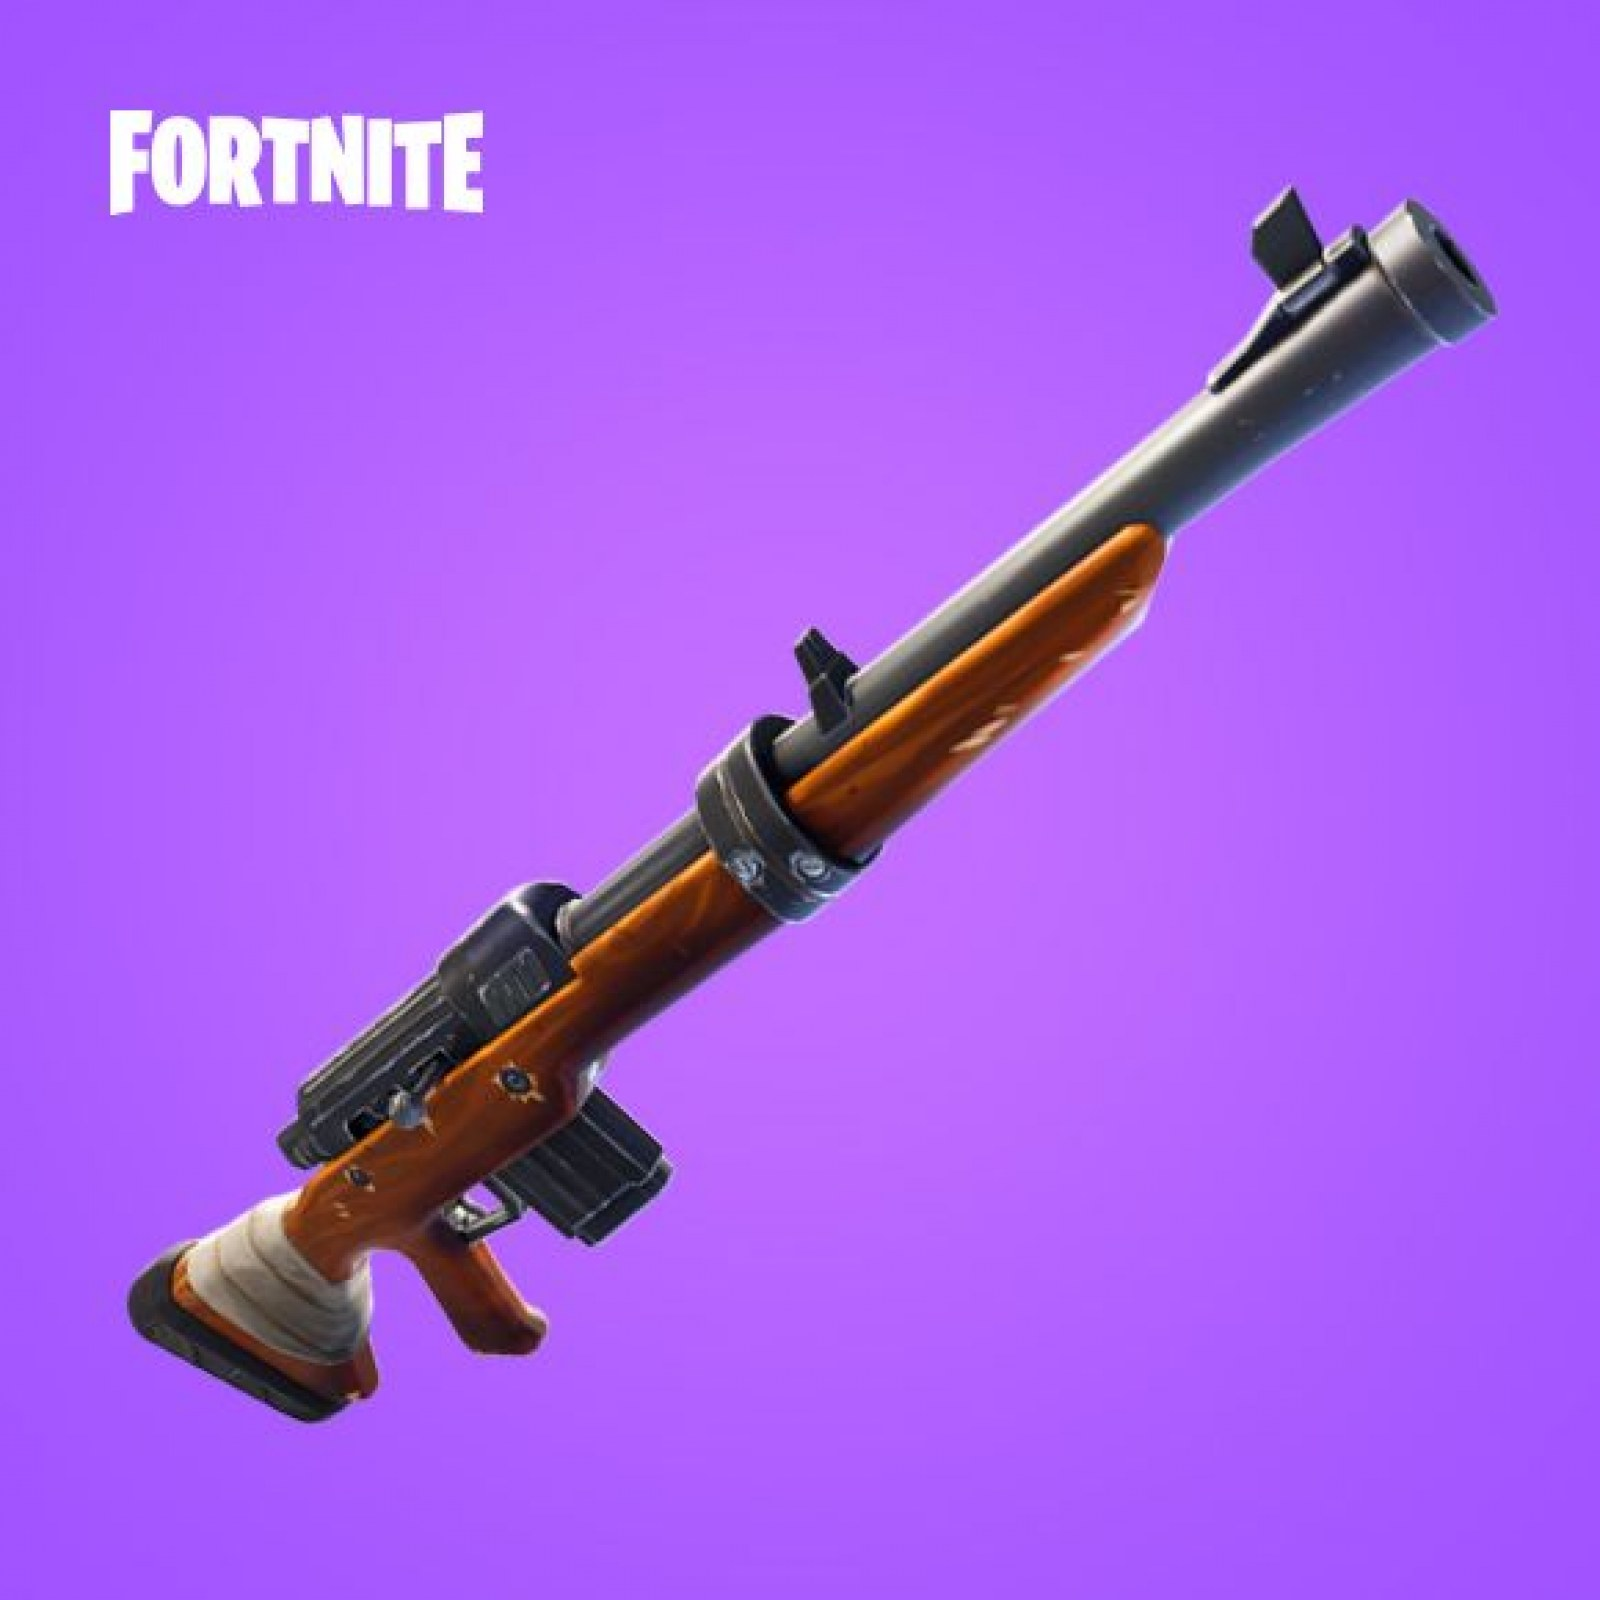 Fortnite' Update 3 1 0 (1 45) Adds Hunting Rifle & New Map Section